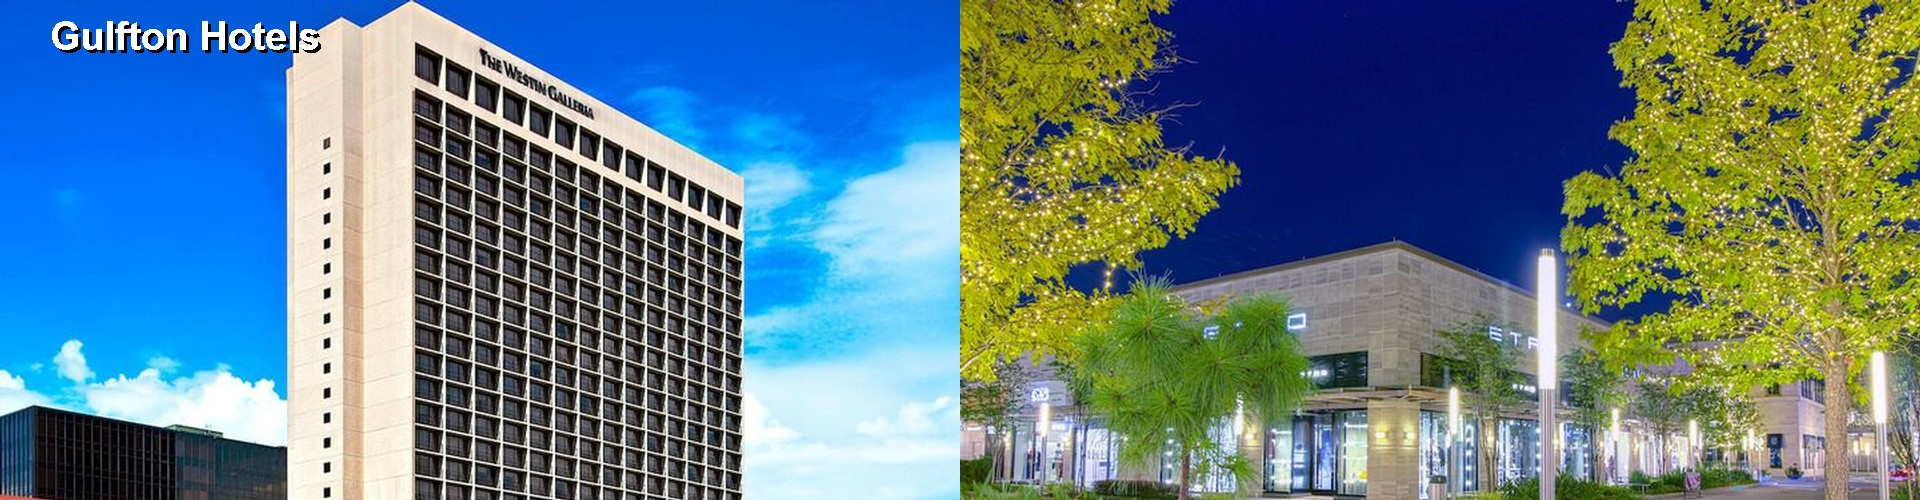 5 Best Hotels near Gulfton